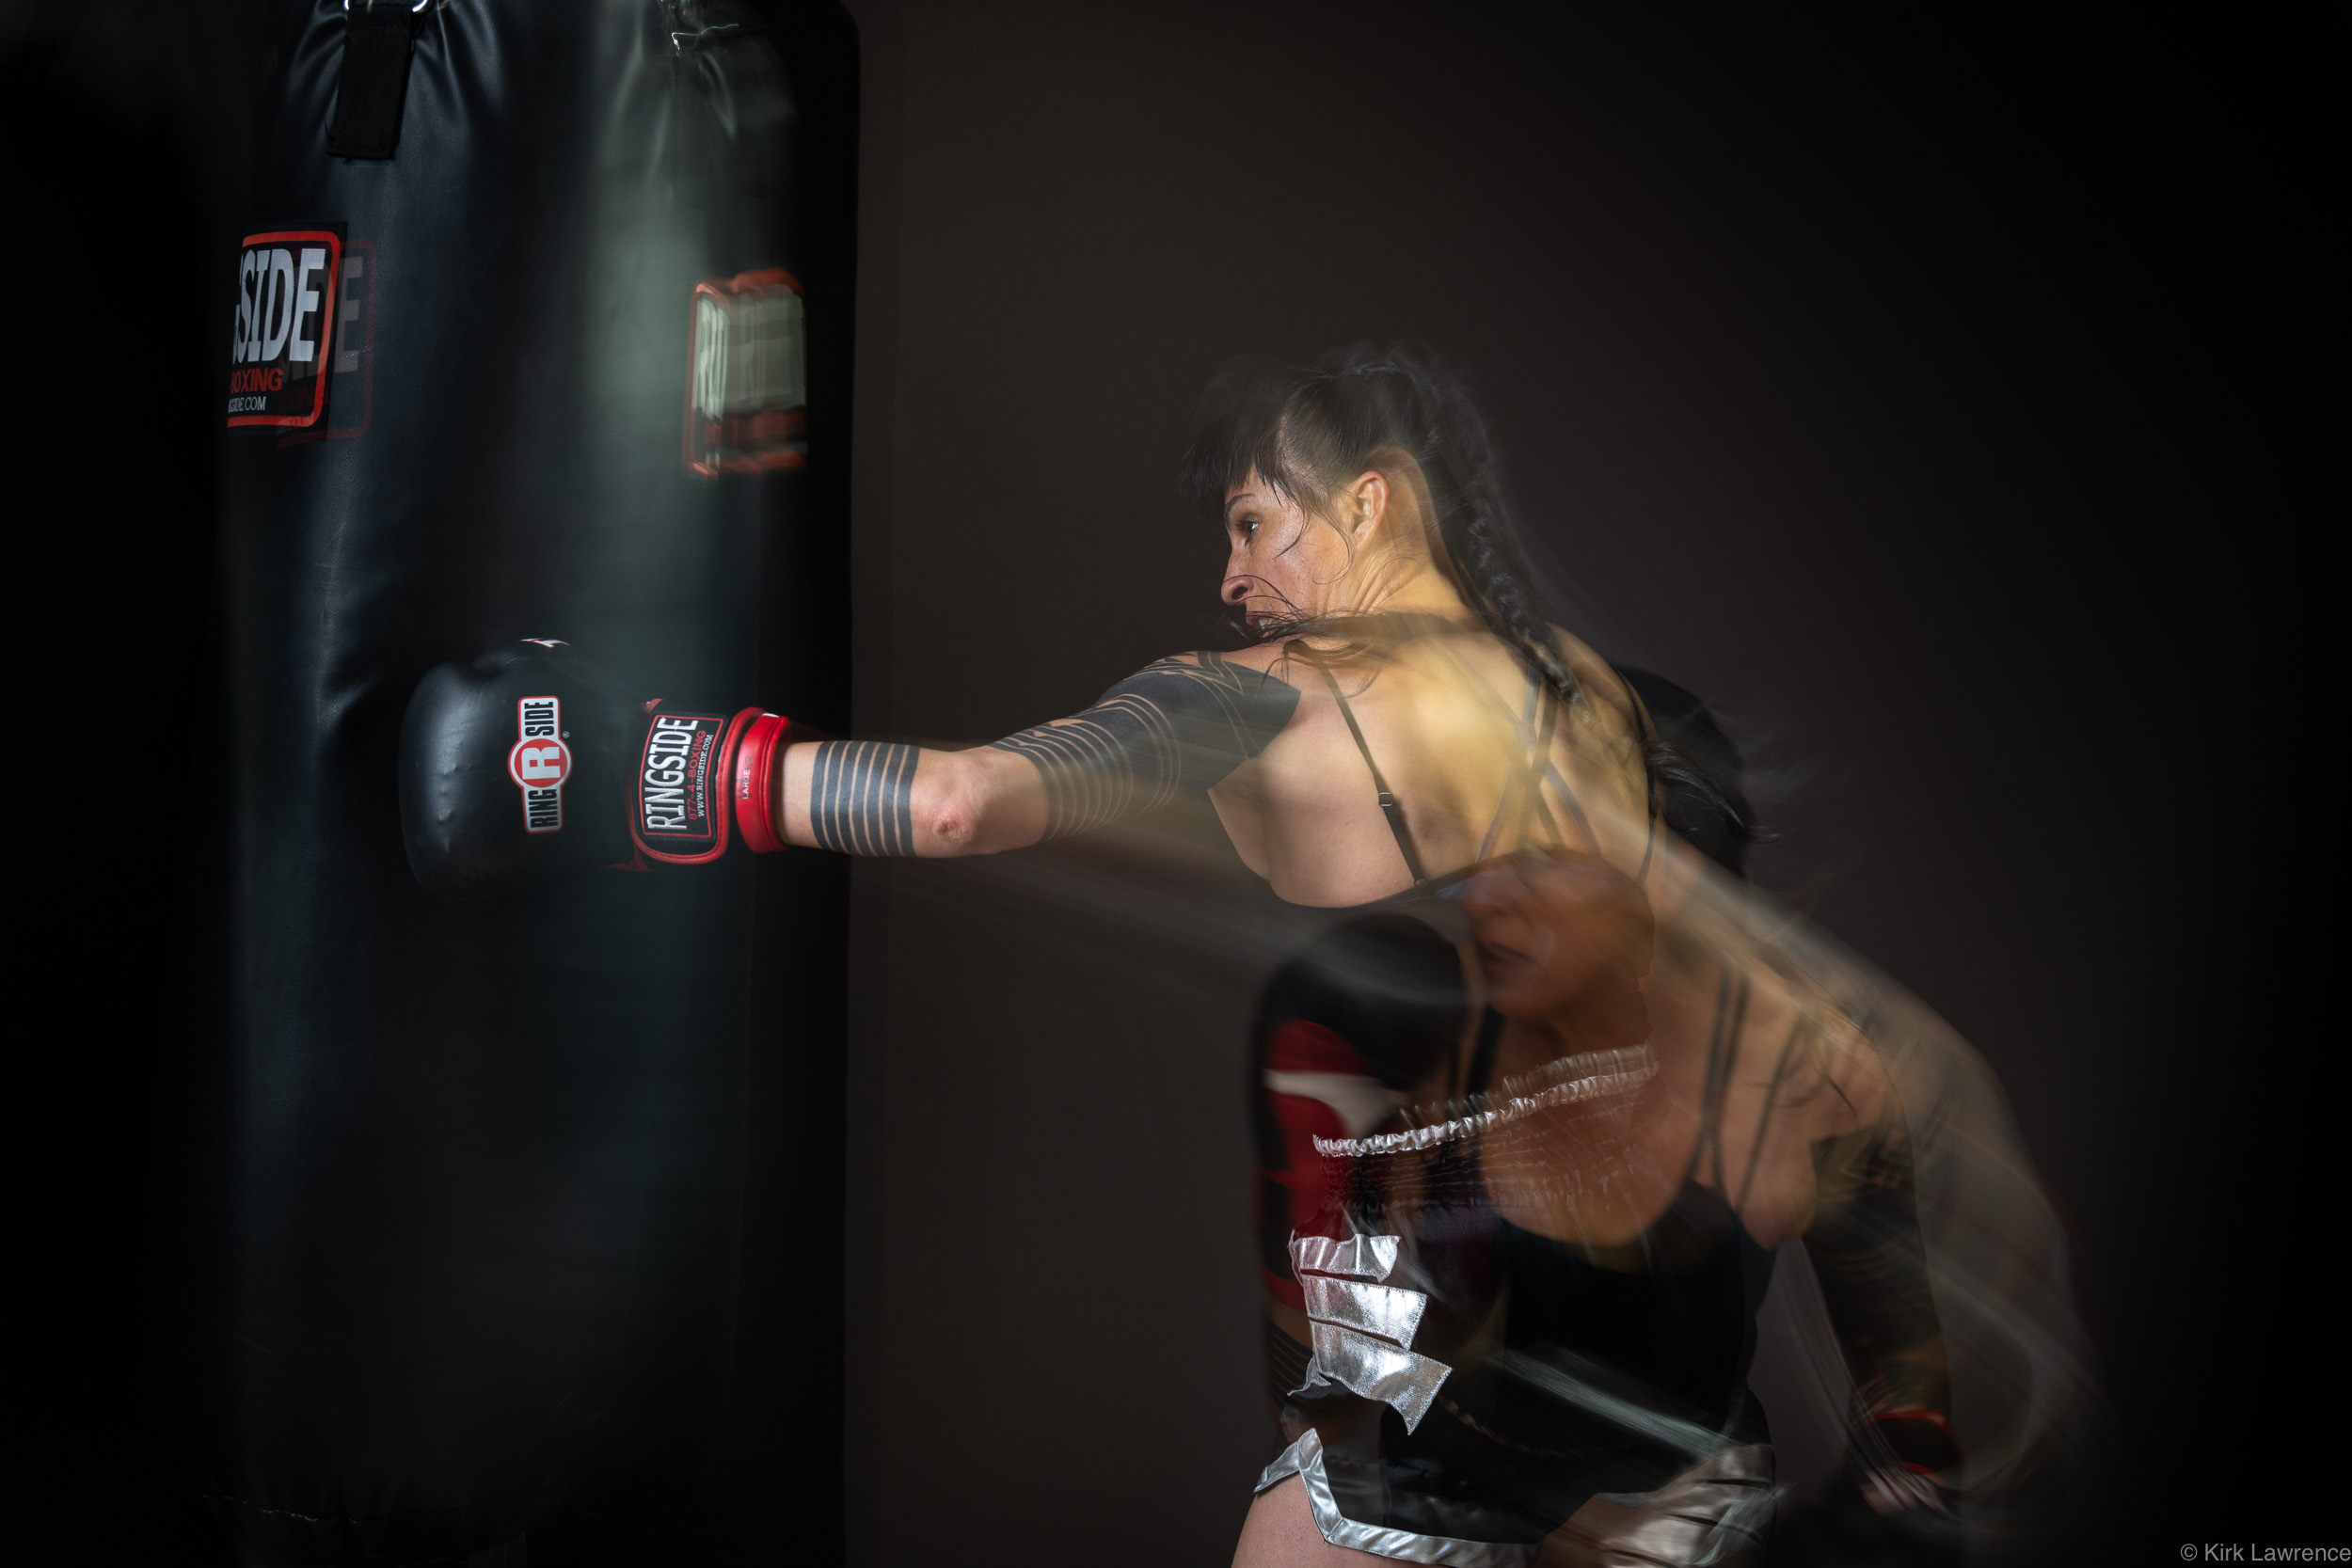 female_kickboxer_punching_bag.jpg